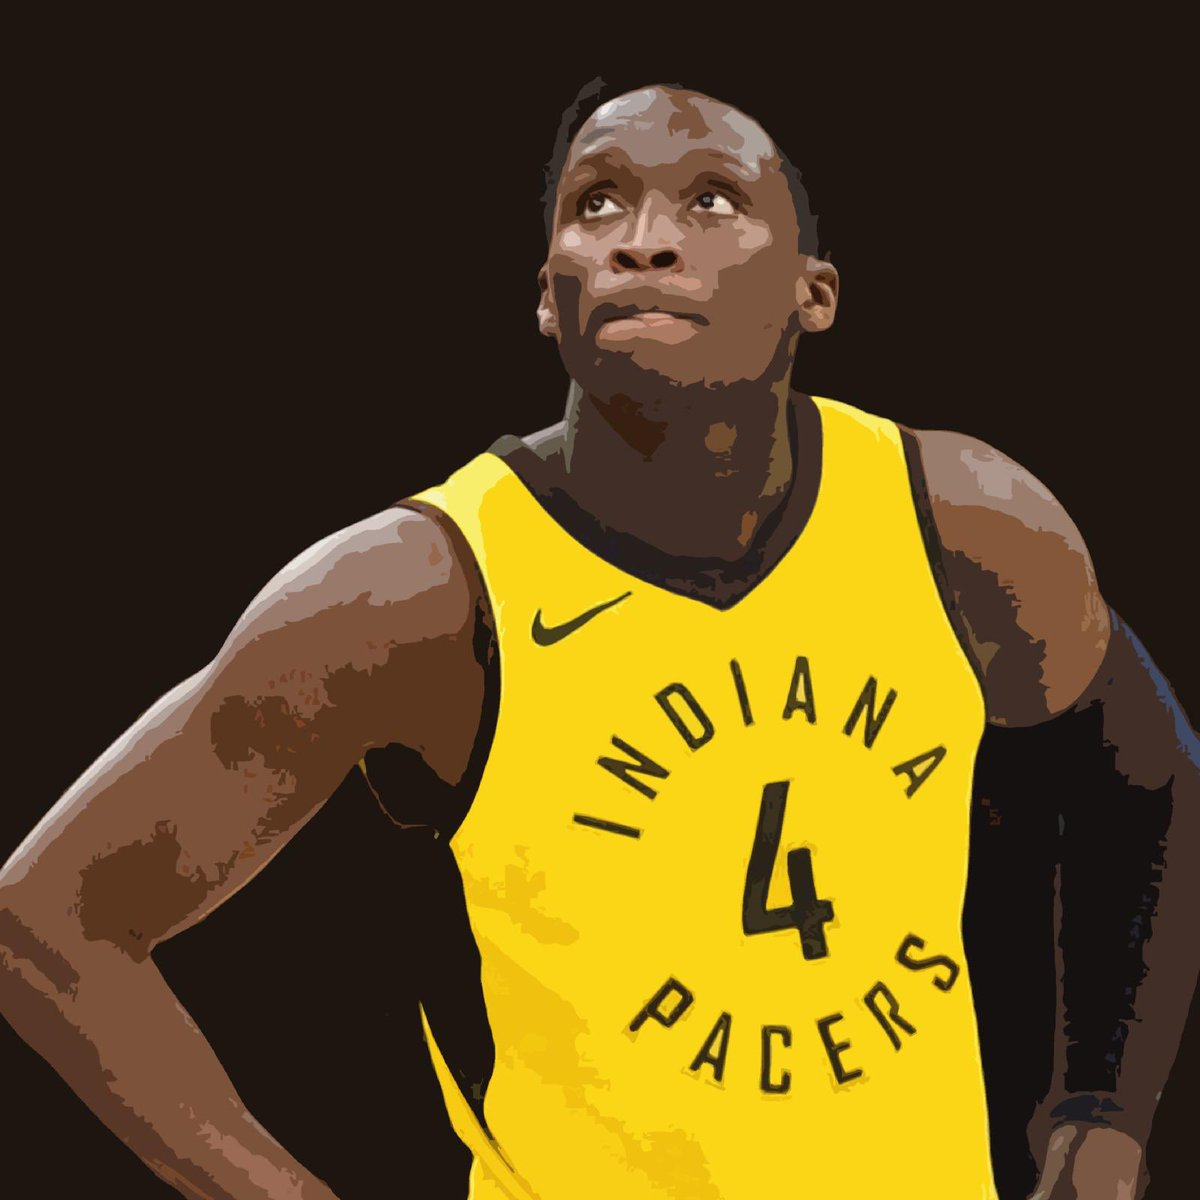 The Pacers are doing it in #IndianaStyle 😎  With a win last night against the Hawks, Indiana took their record to 17-9 👏  This has all been without star player Victor Oladipo, when he's back in the mix, are the Pacers a home court lock? 🏡   #NBATwitter   #NBA #Oladipo #Sabonis